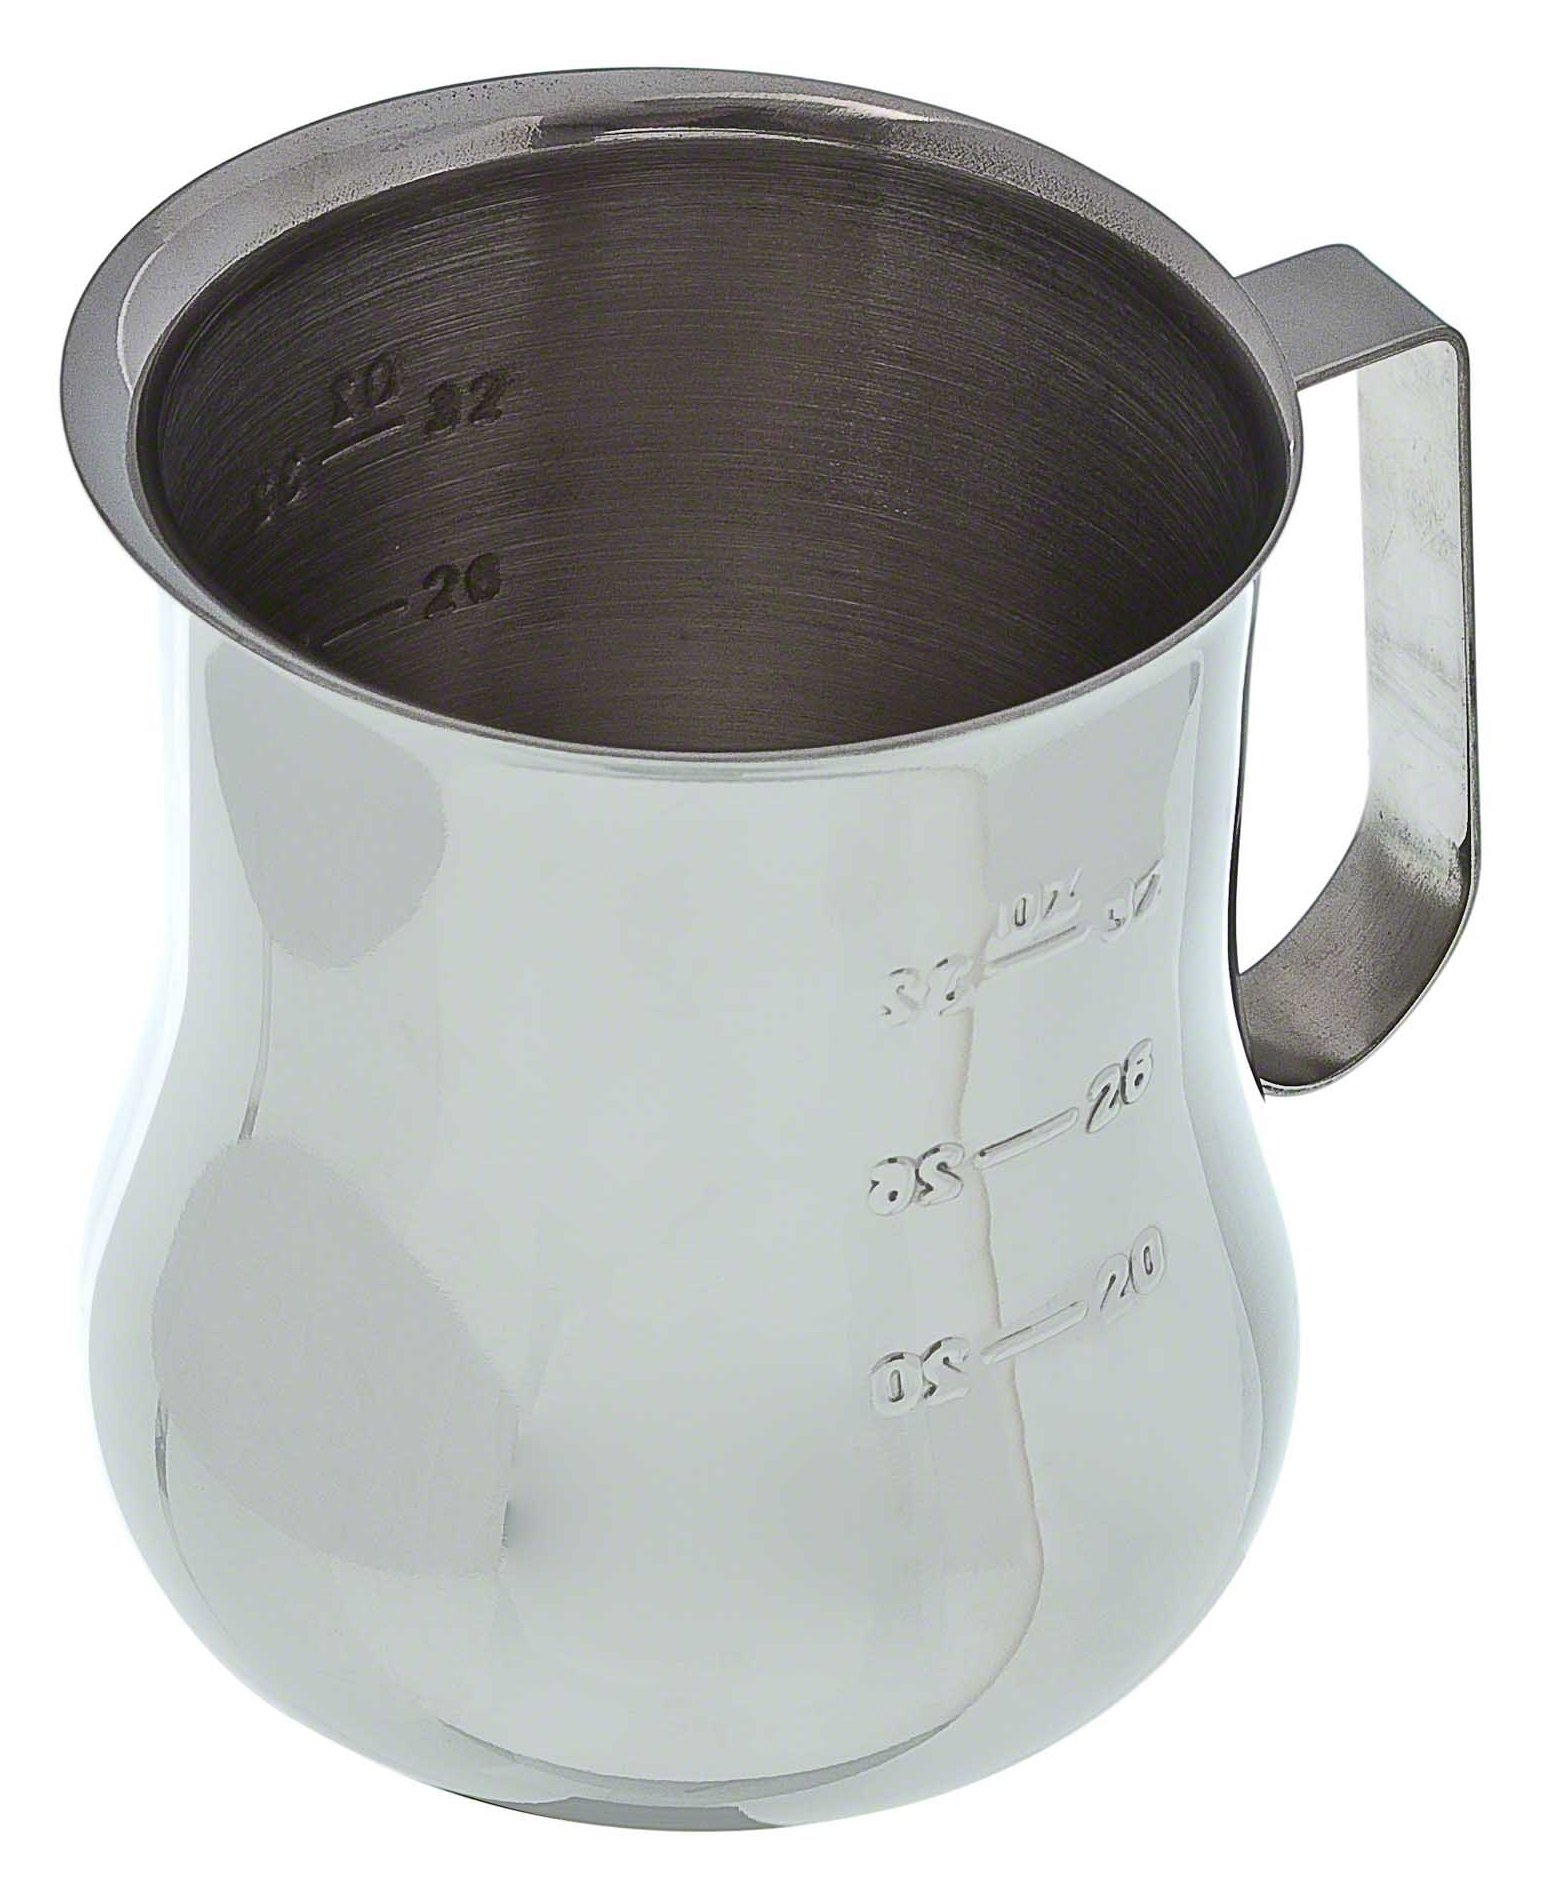 Update International (EPB-40M) 40 Oz Stainless Steel Frothing Pitcher w/Measuring Scale